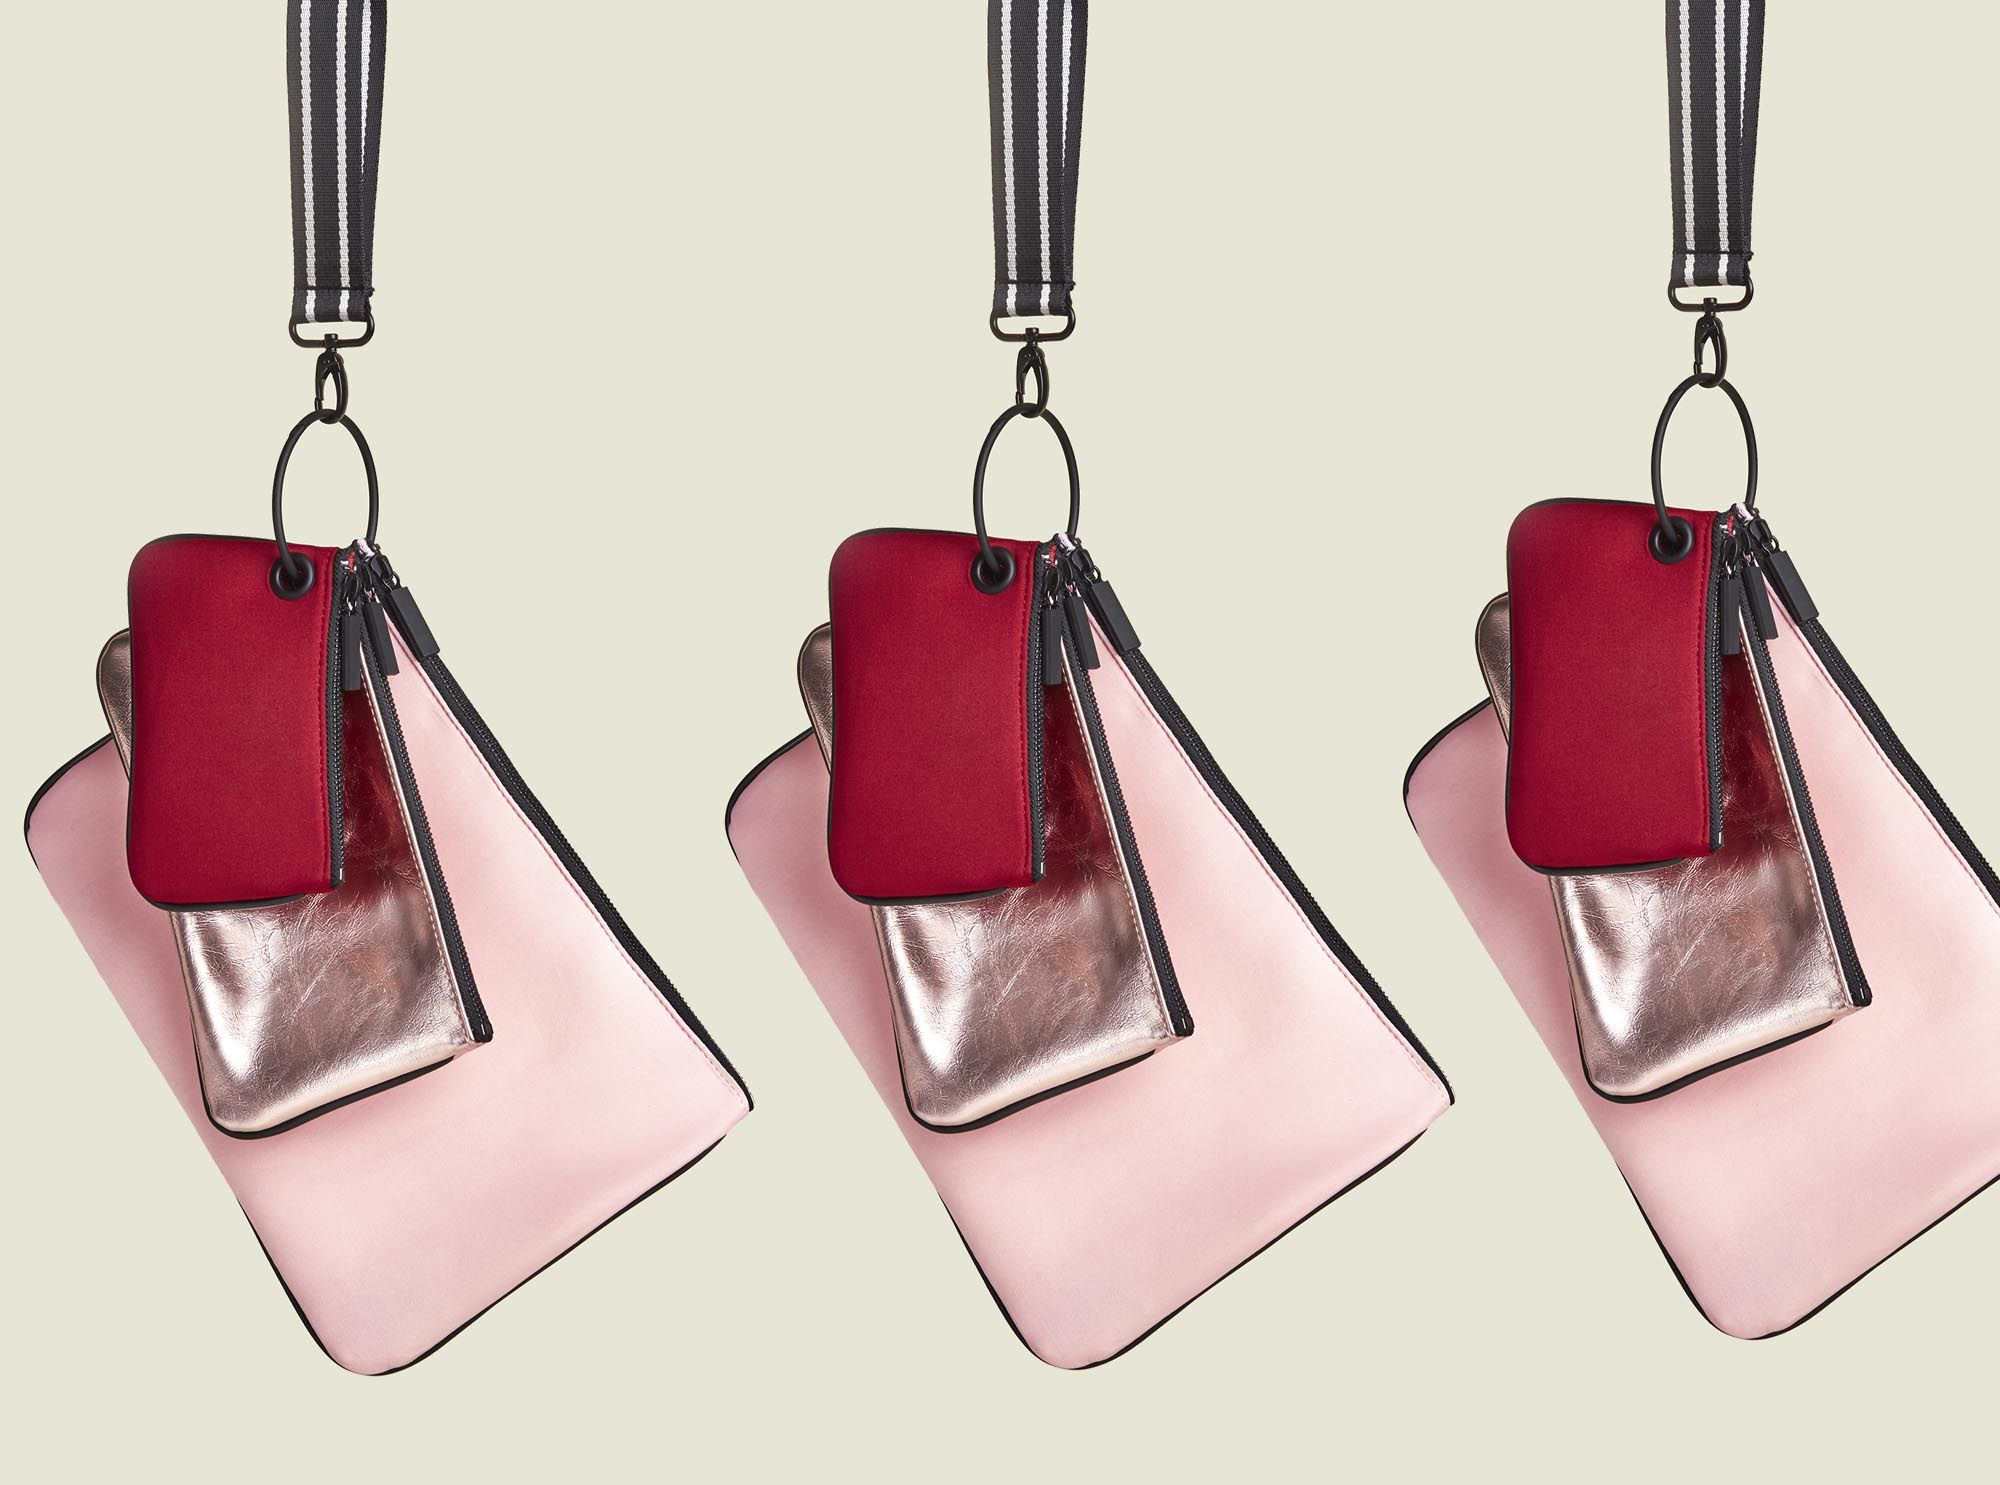 Zip pouches with string